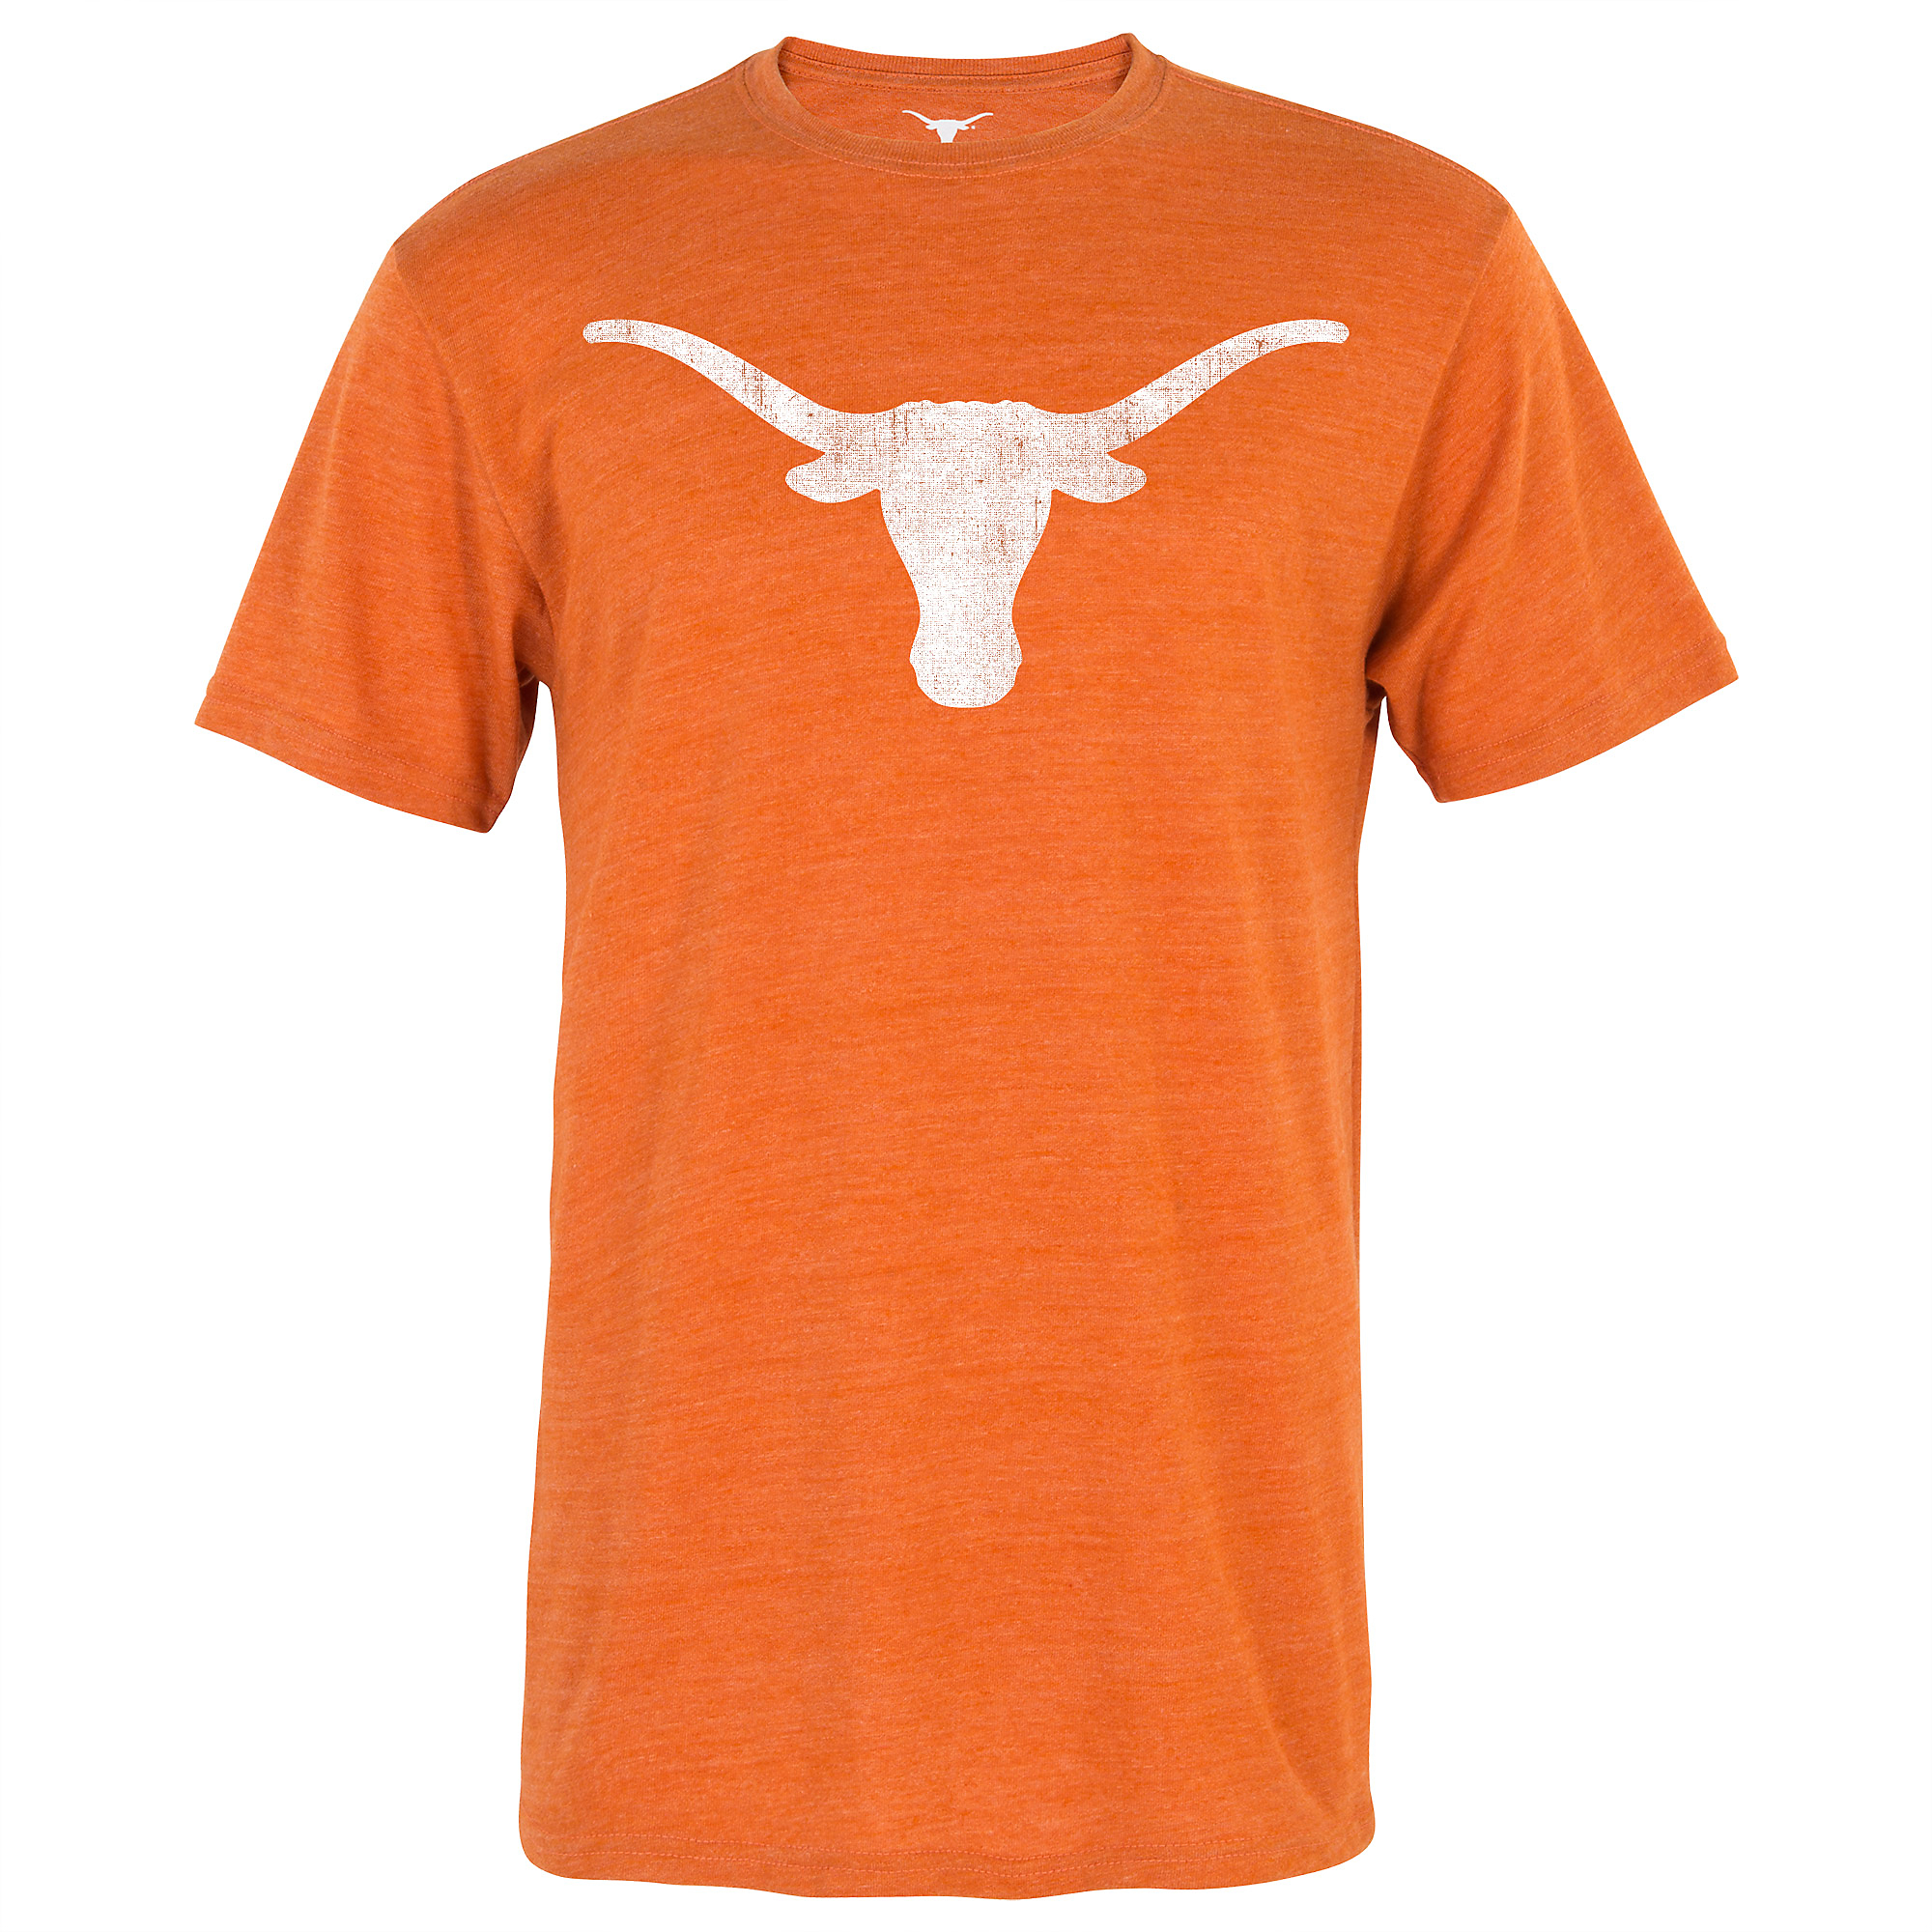 Texas Longhorns Distressed Silhouette Tee